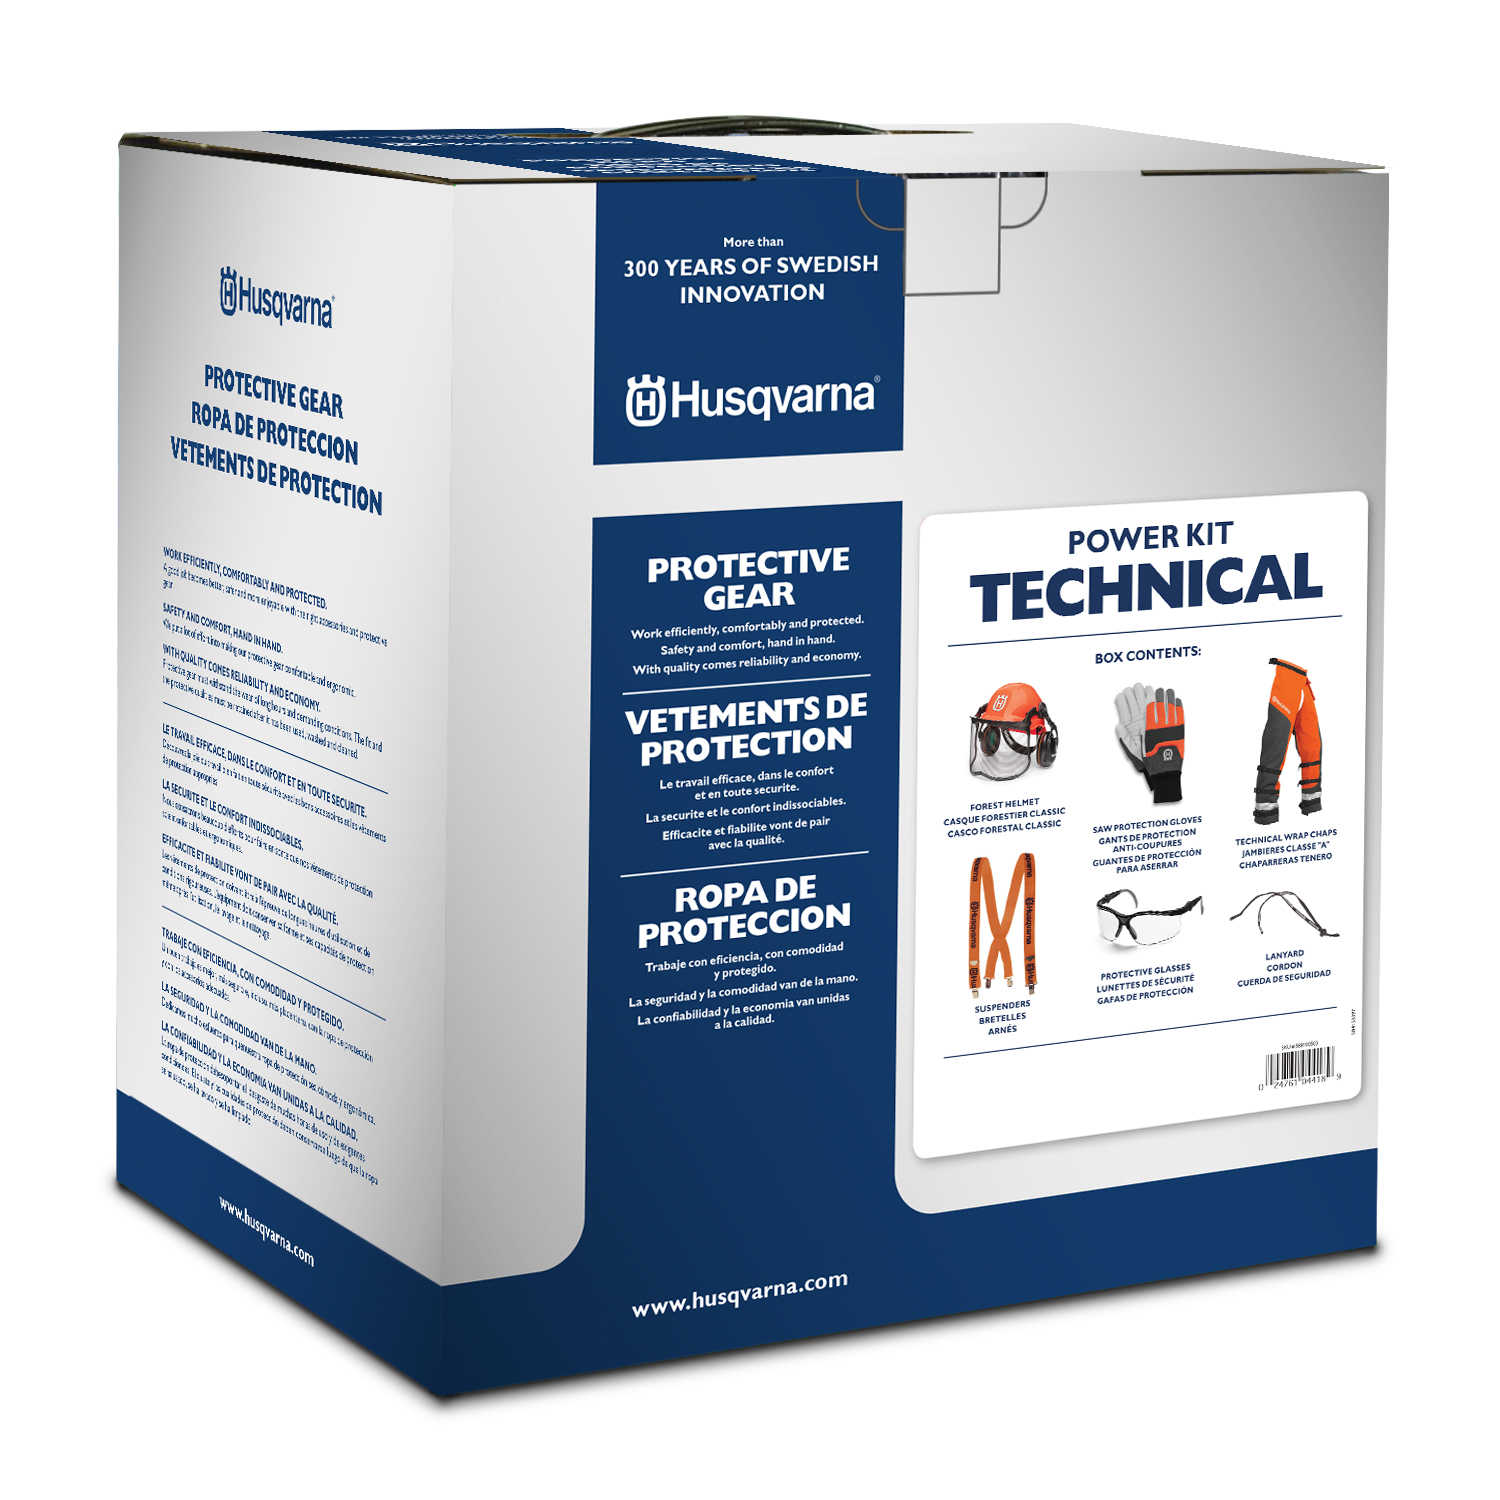 Image for Professional Personal Protection Power Kit                                                                                       from HusqvarnaB2C